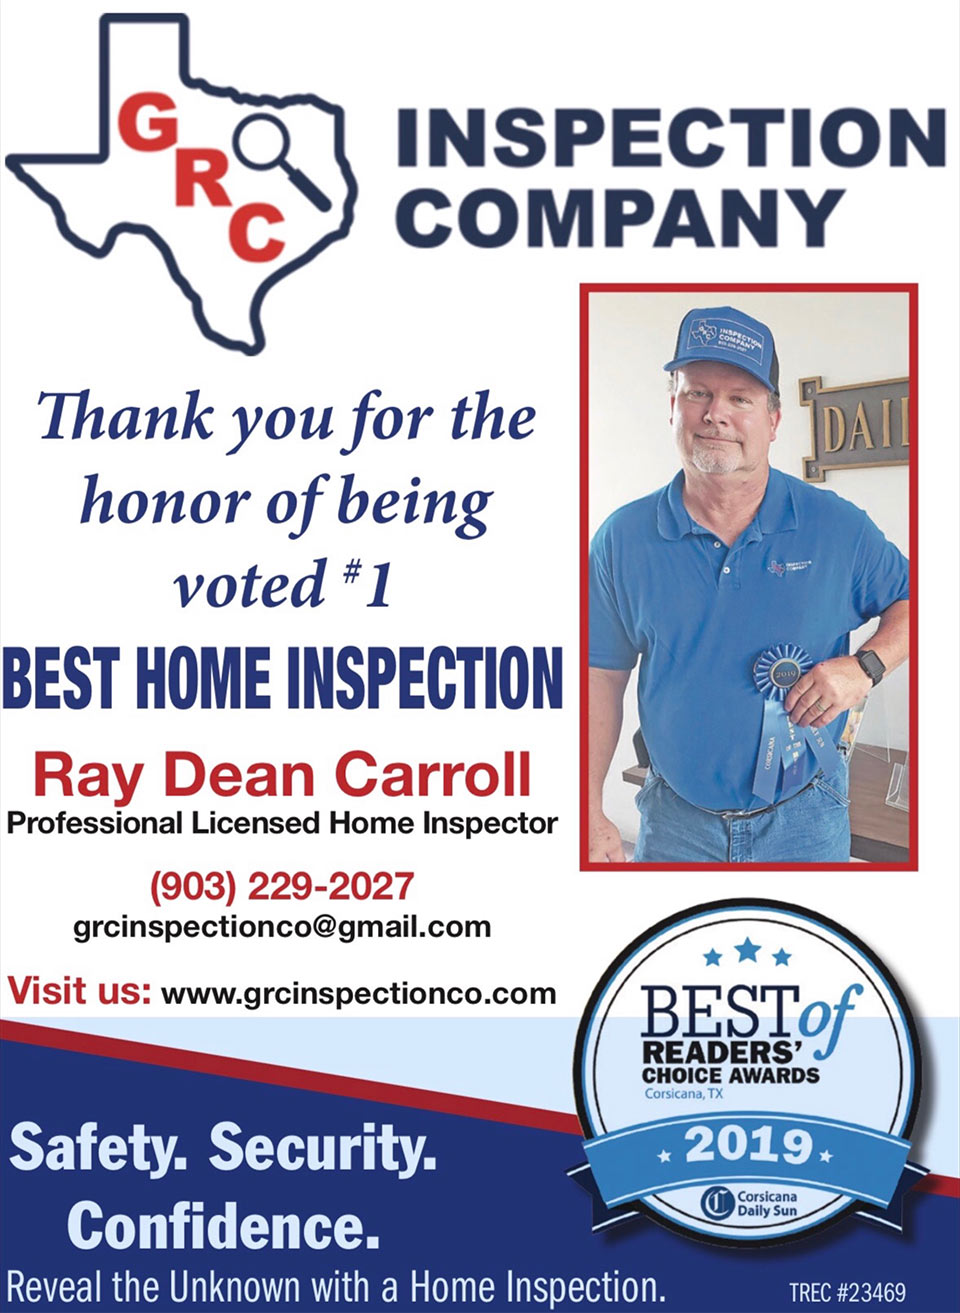 GRC Inspection Company: Voted #1 Best Home Inspection